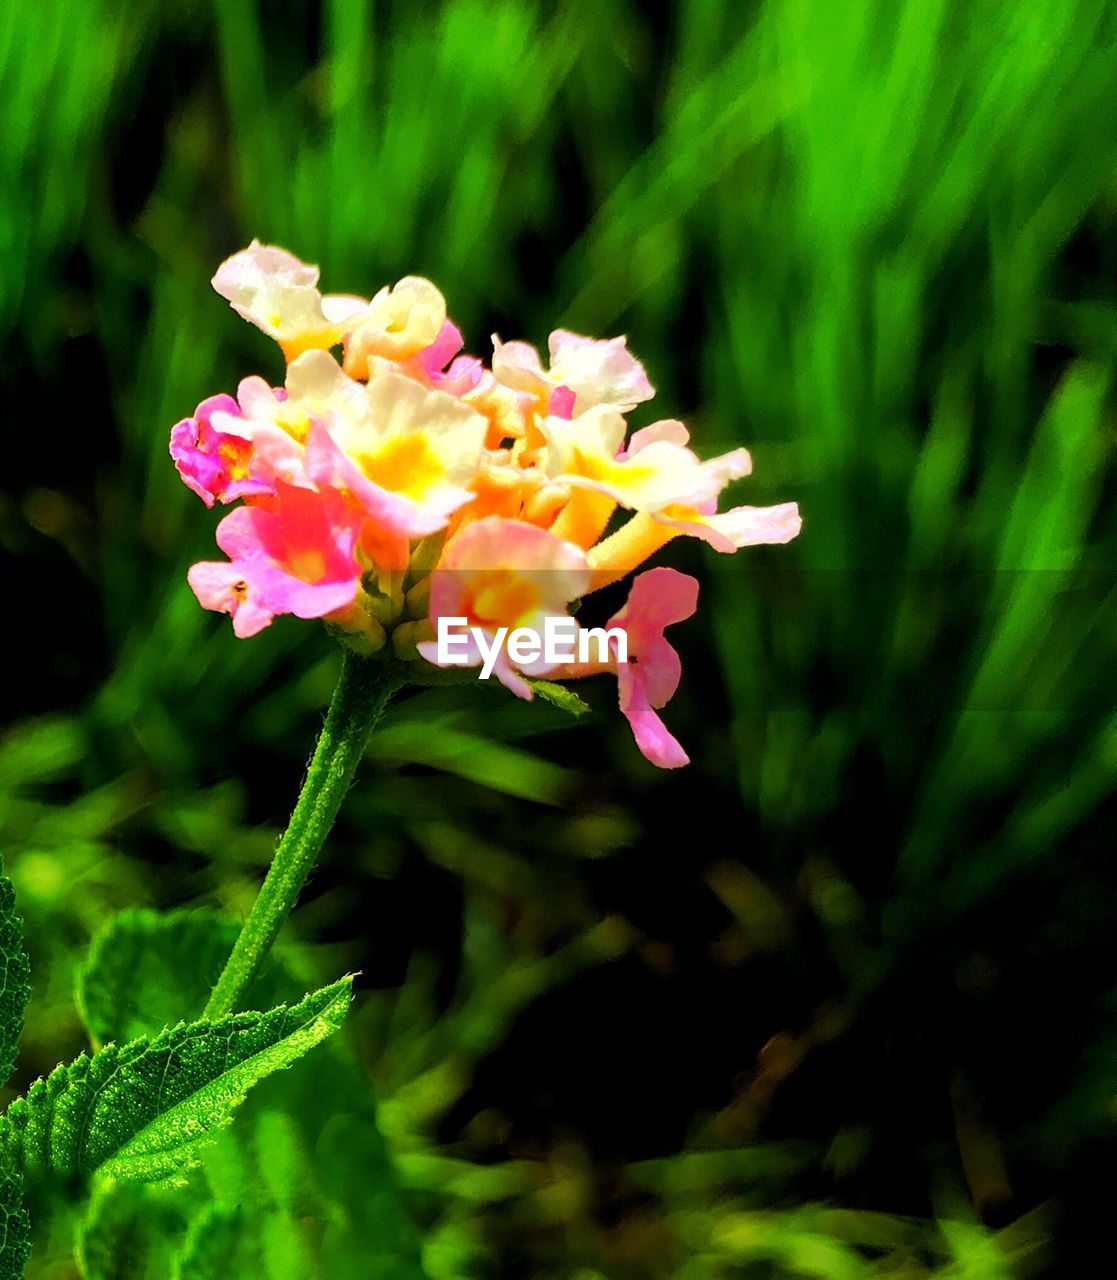 flower, growth, petal, beauty in nature, nature, plant, fragility, flower head, freshness, blooming, focus on foreground, park - man made space, green color, no people, close-up, outdoors, day